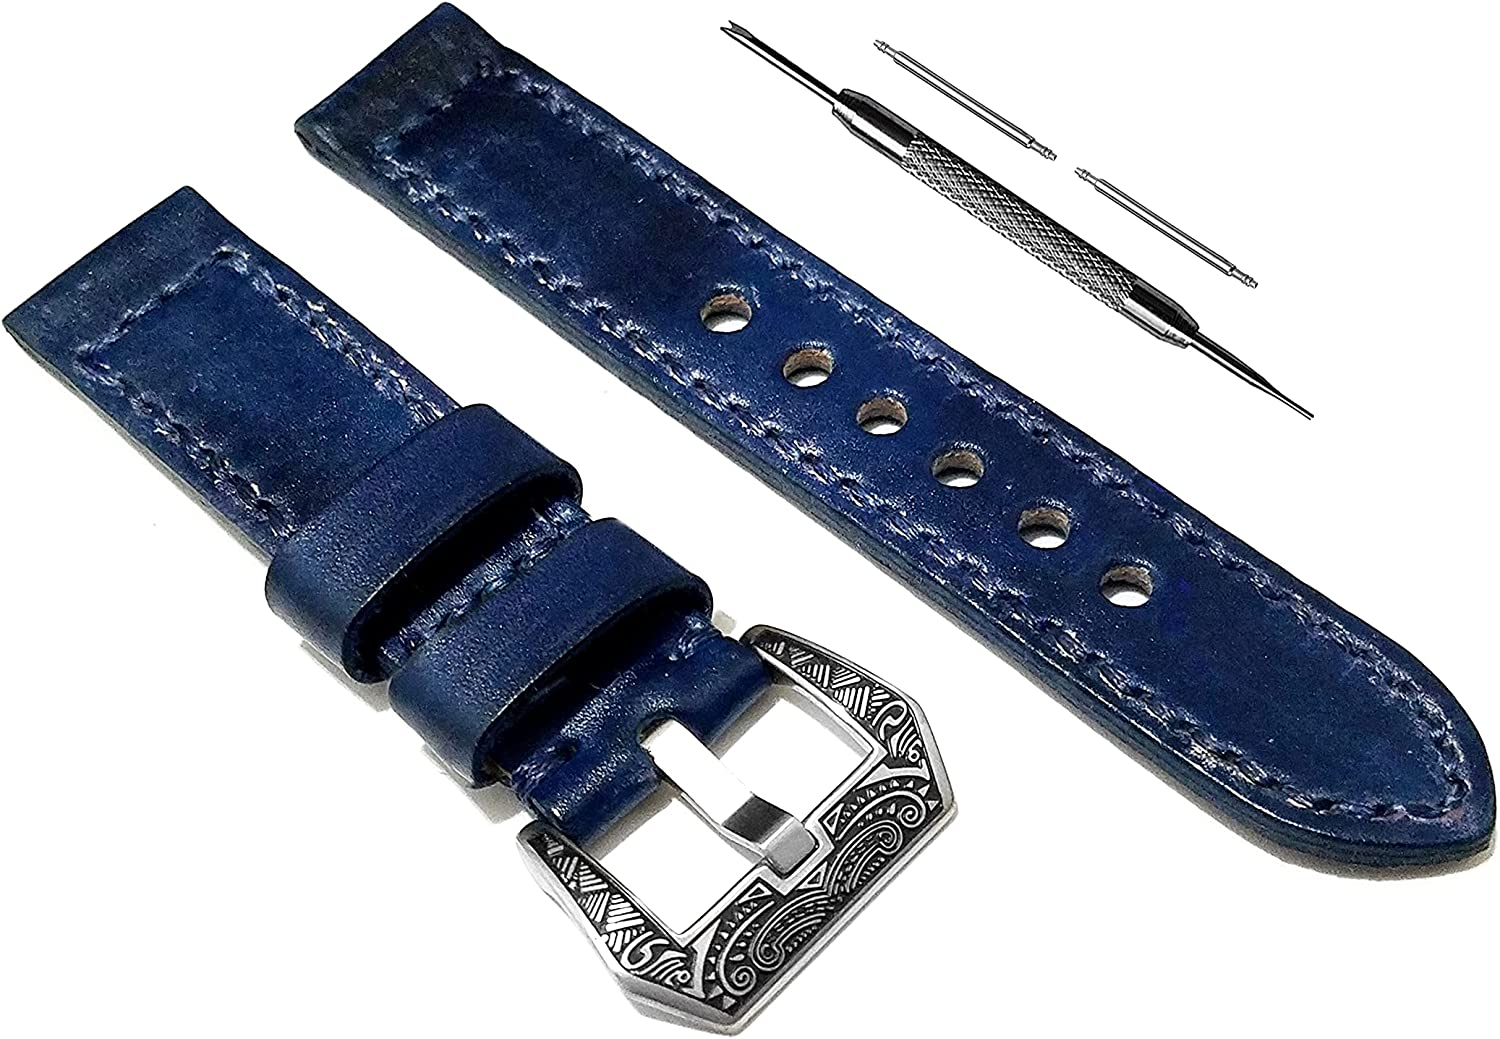 NICKSTON Blue Dealing full price reduction Brushed Genuine Leather with Regular dealer Huaw Compatible Strap